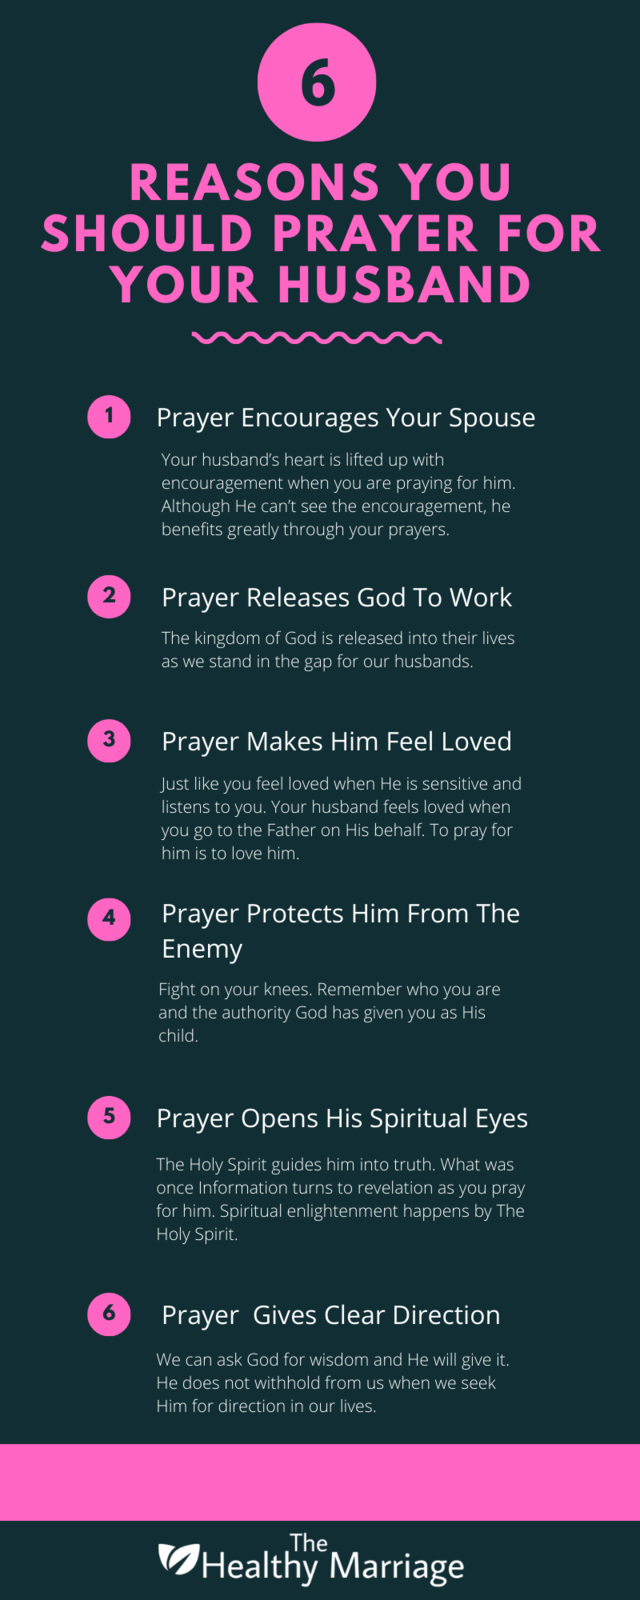 6 Reasons You Should Pray For Your Husband